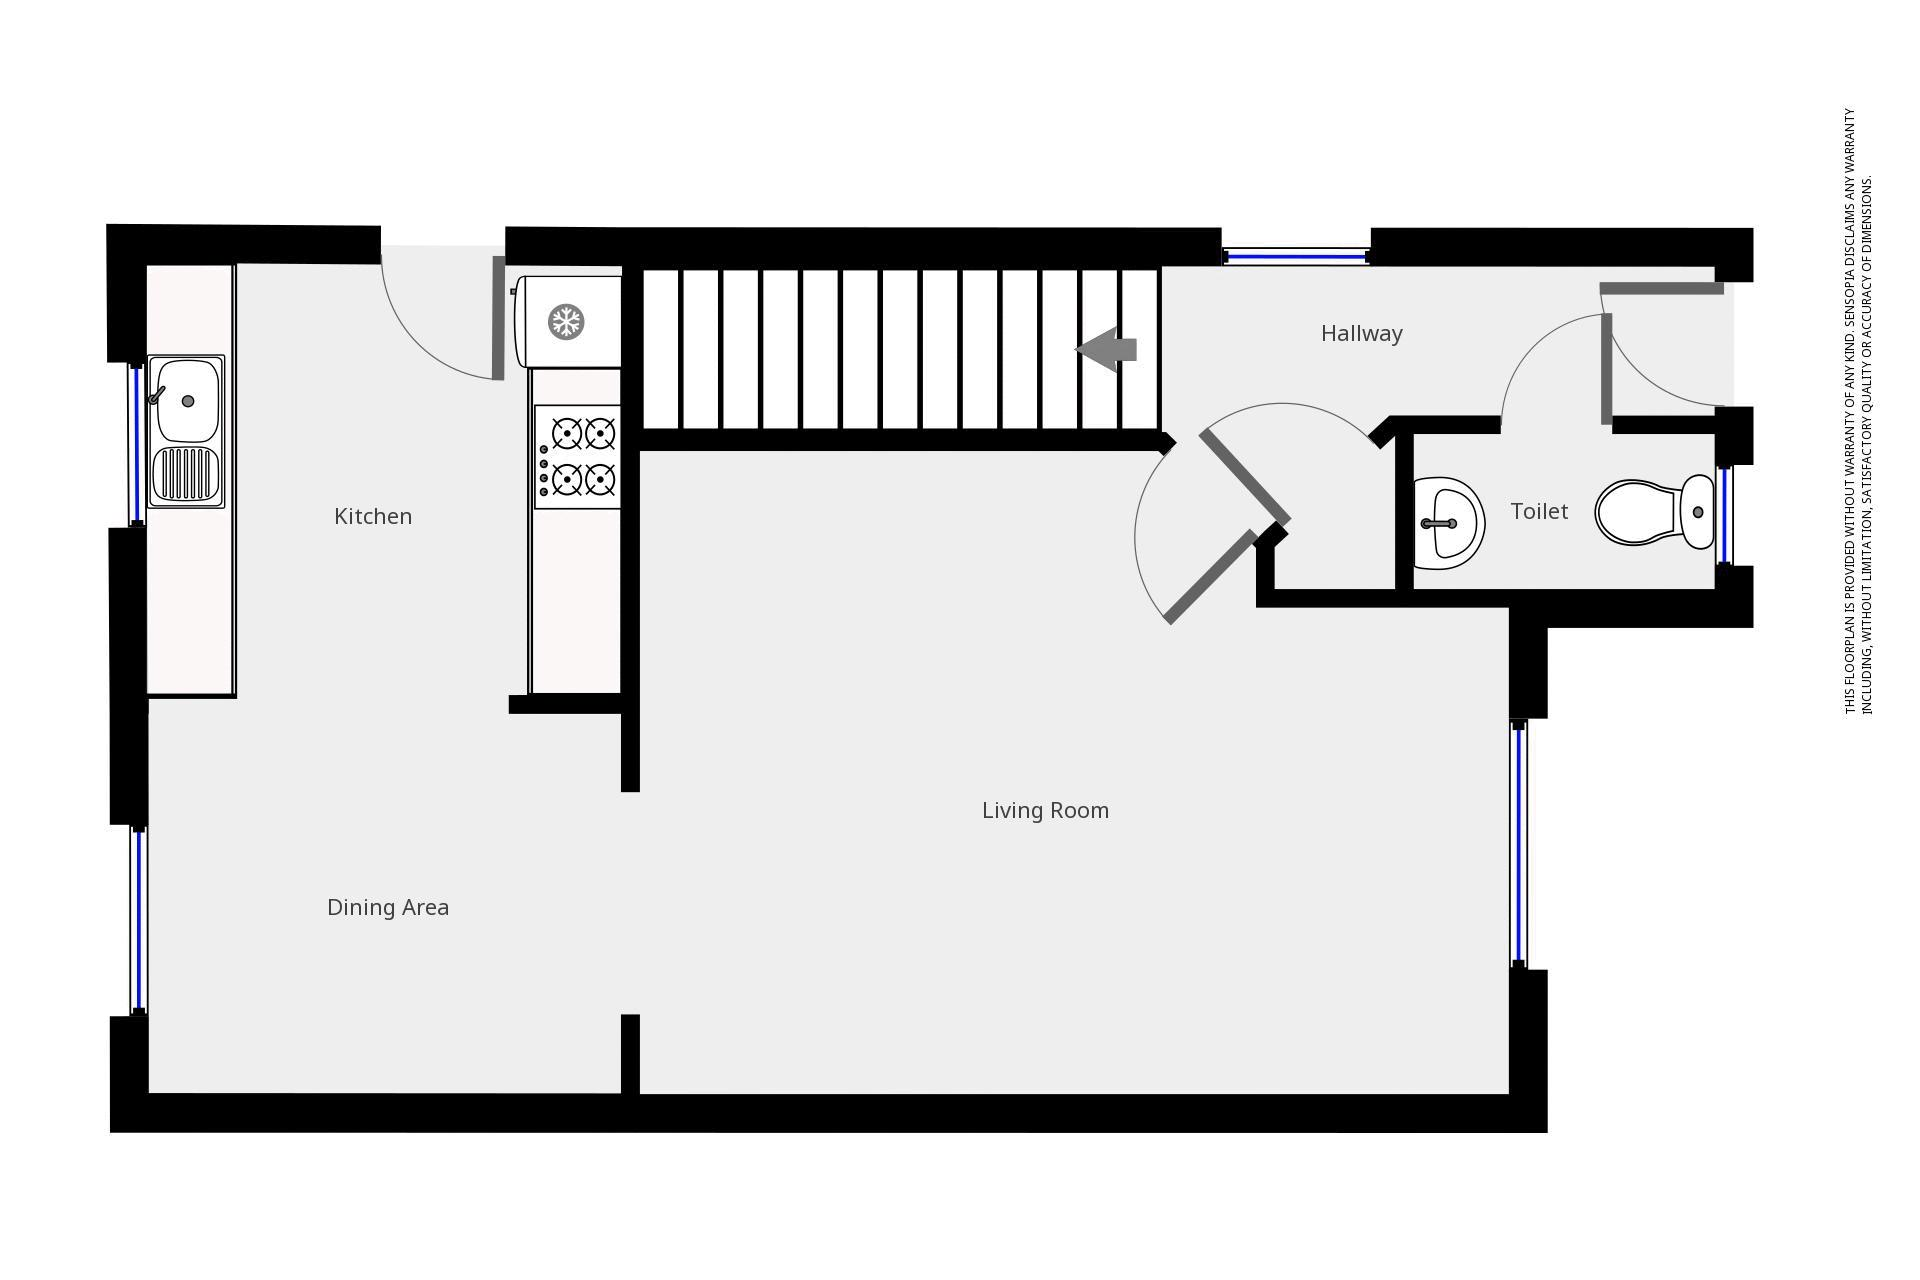 Floorplan Ground Floor